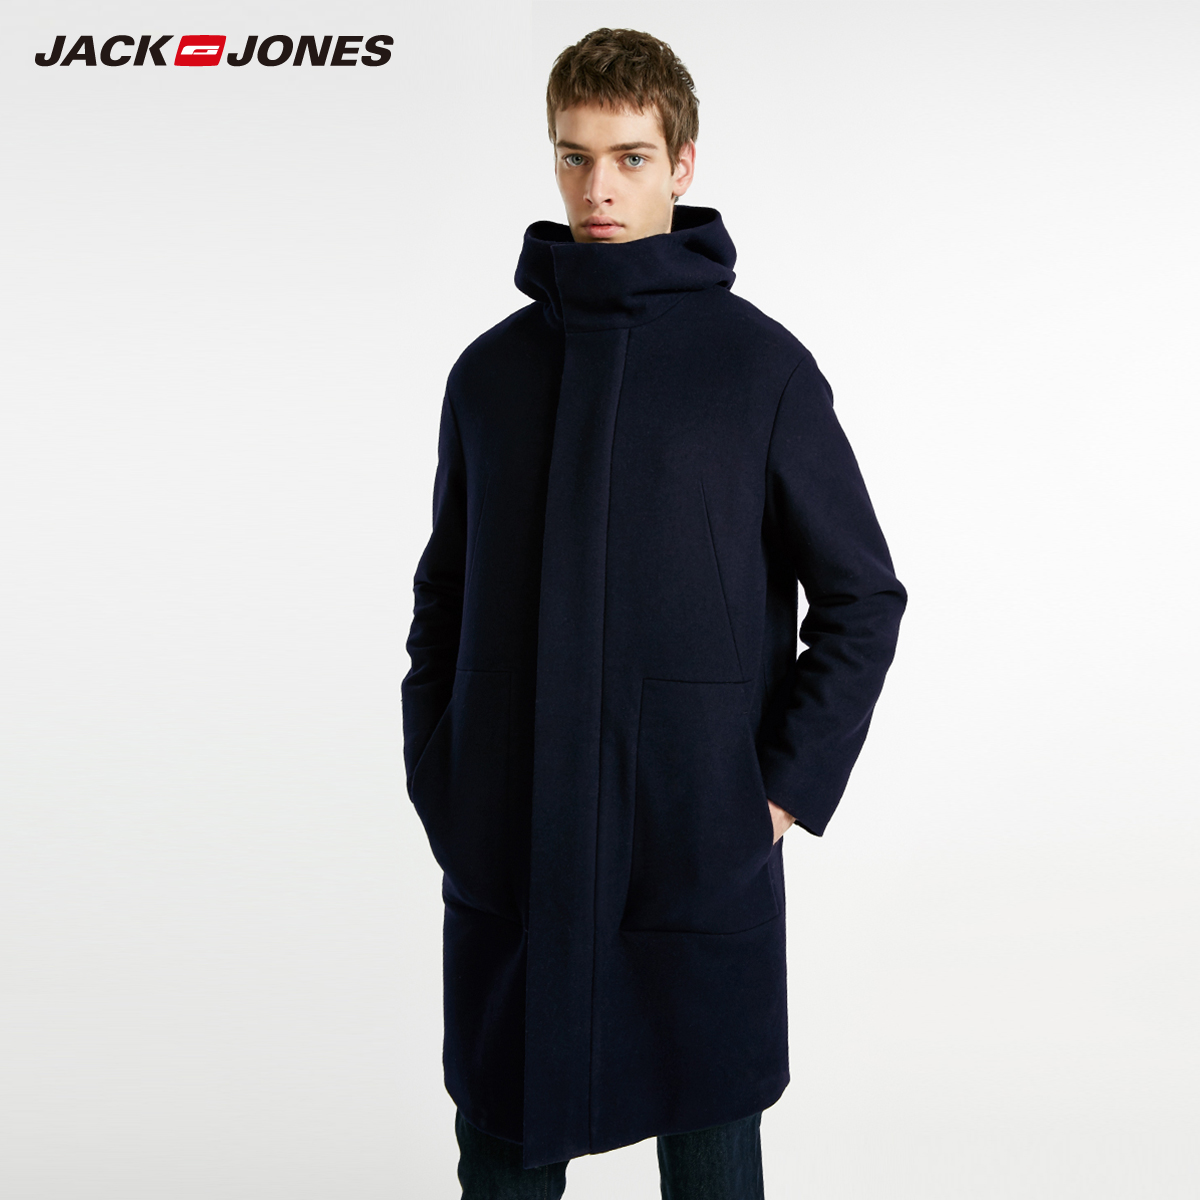 JackJones Jack Jones outlets men's autumn mid-length woolen woolen coat cotton coat E